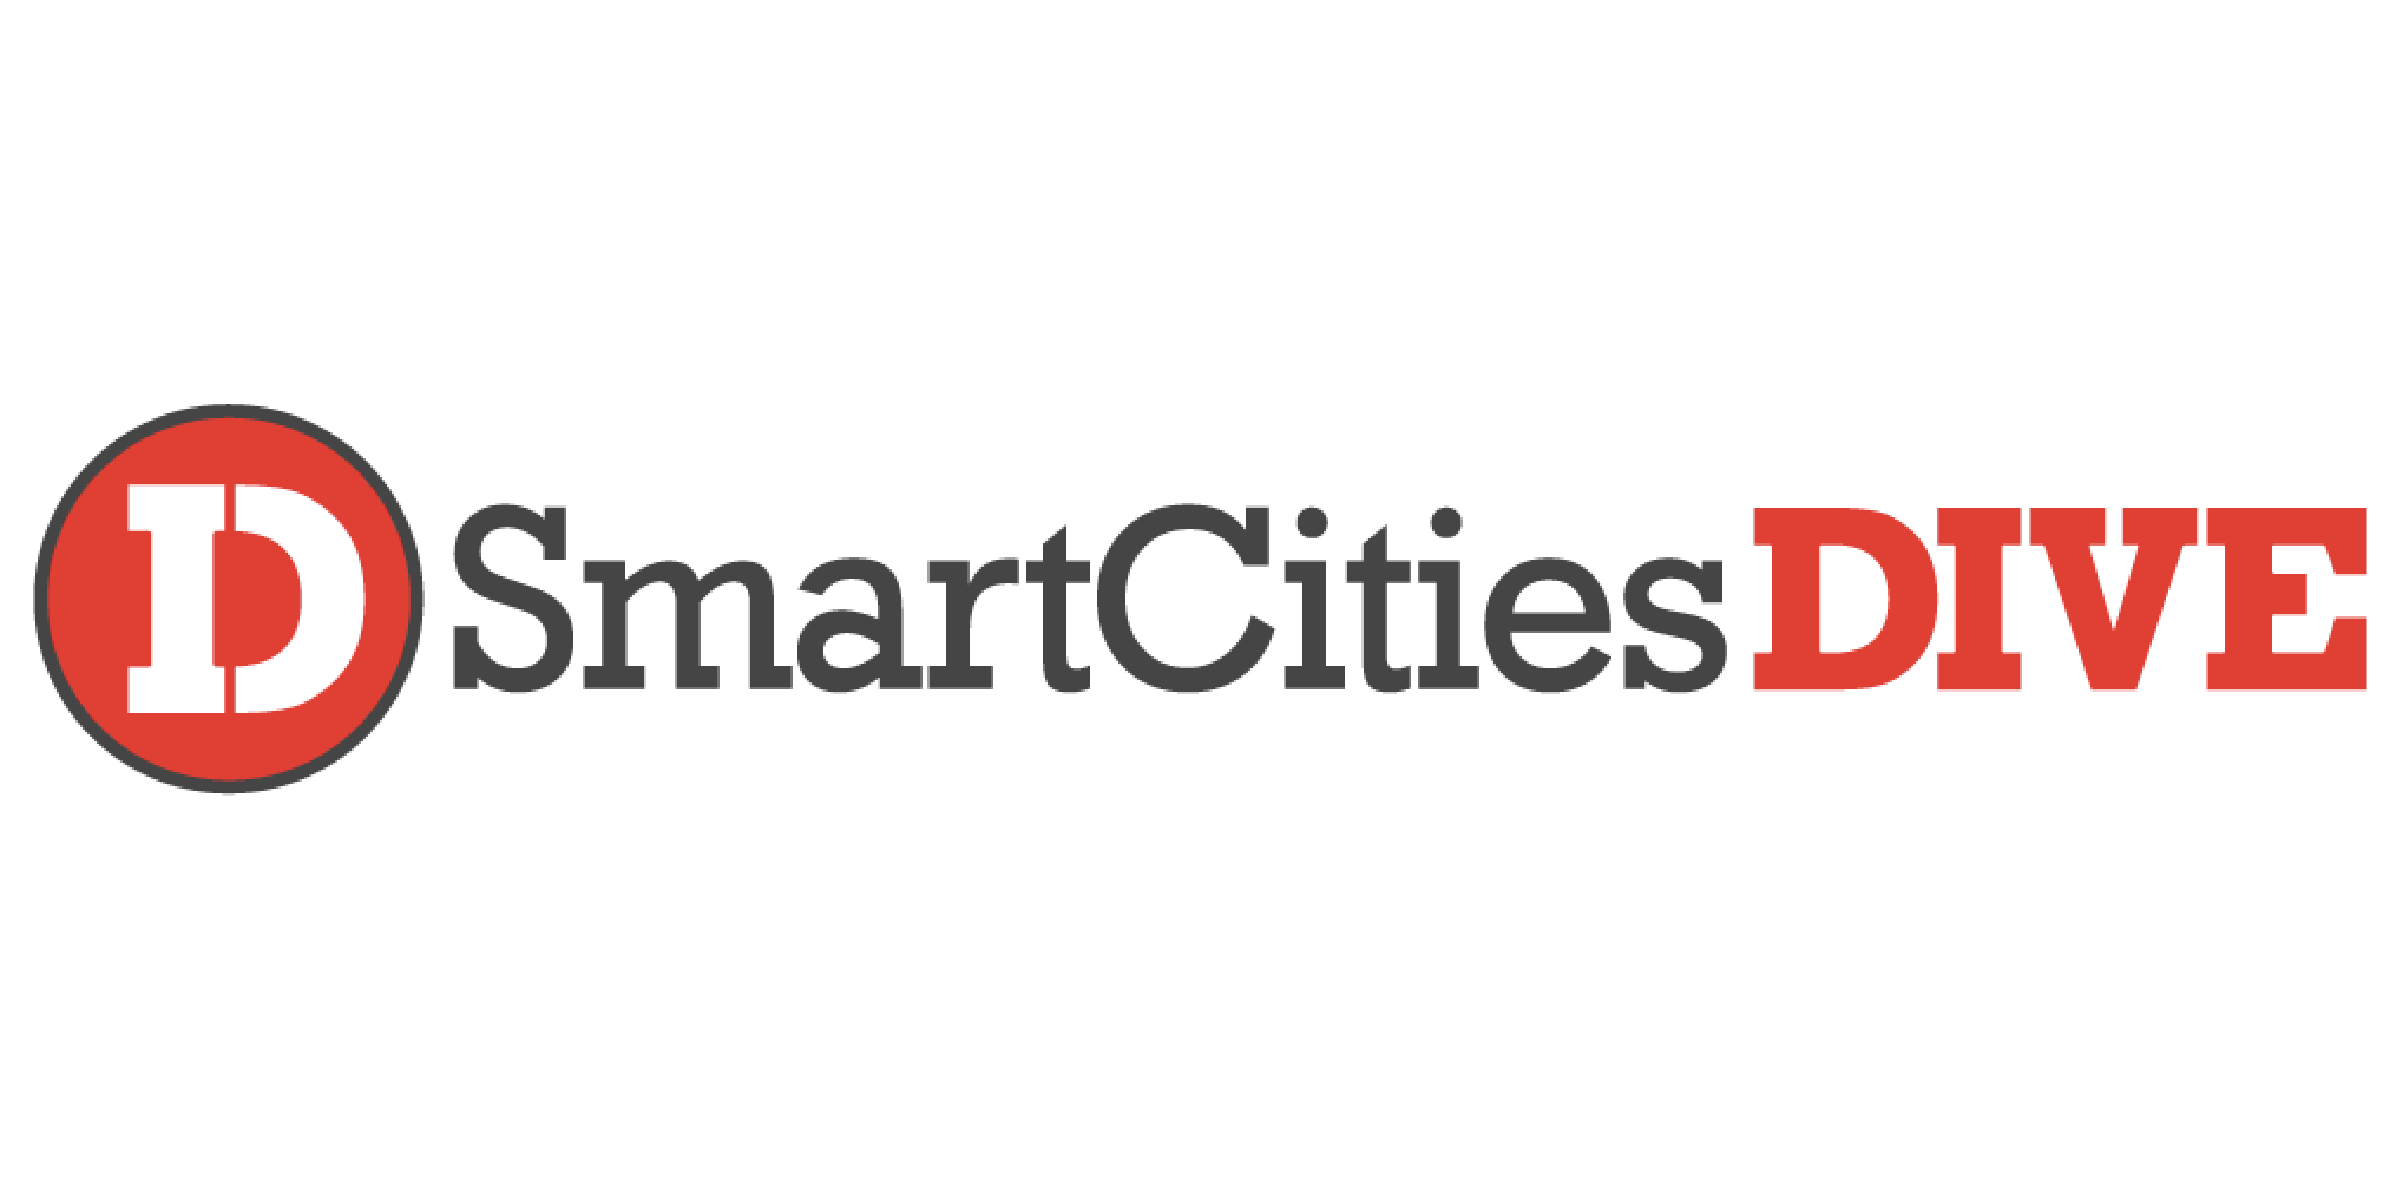 smartcitiesdive-01.png